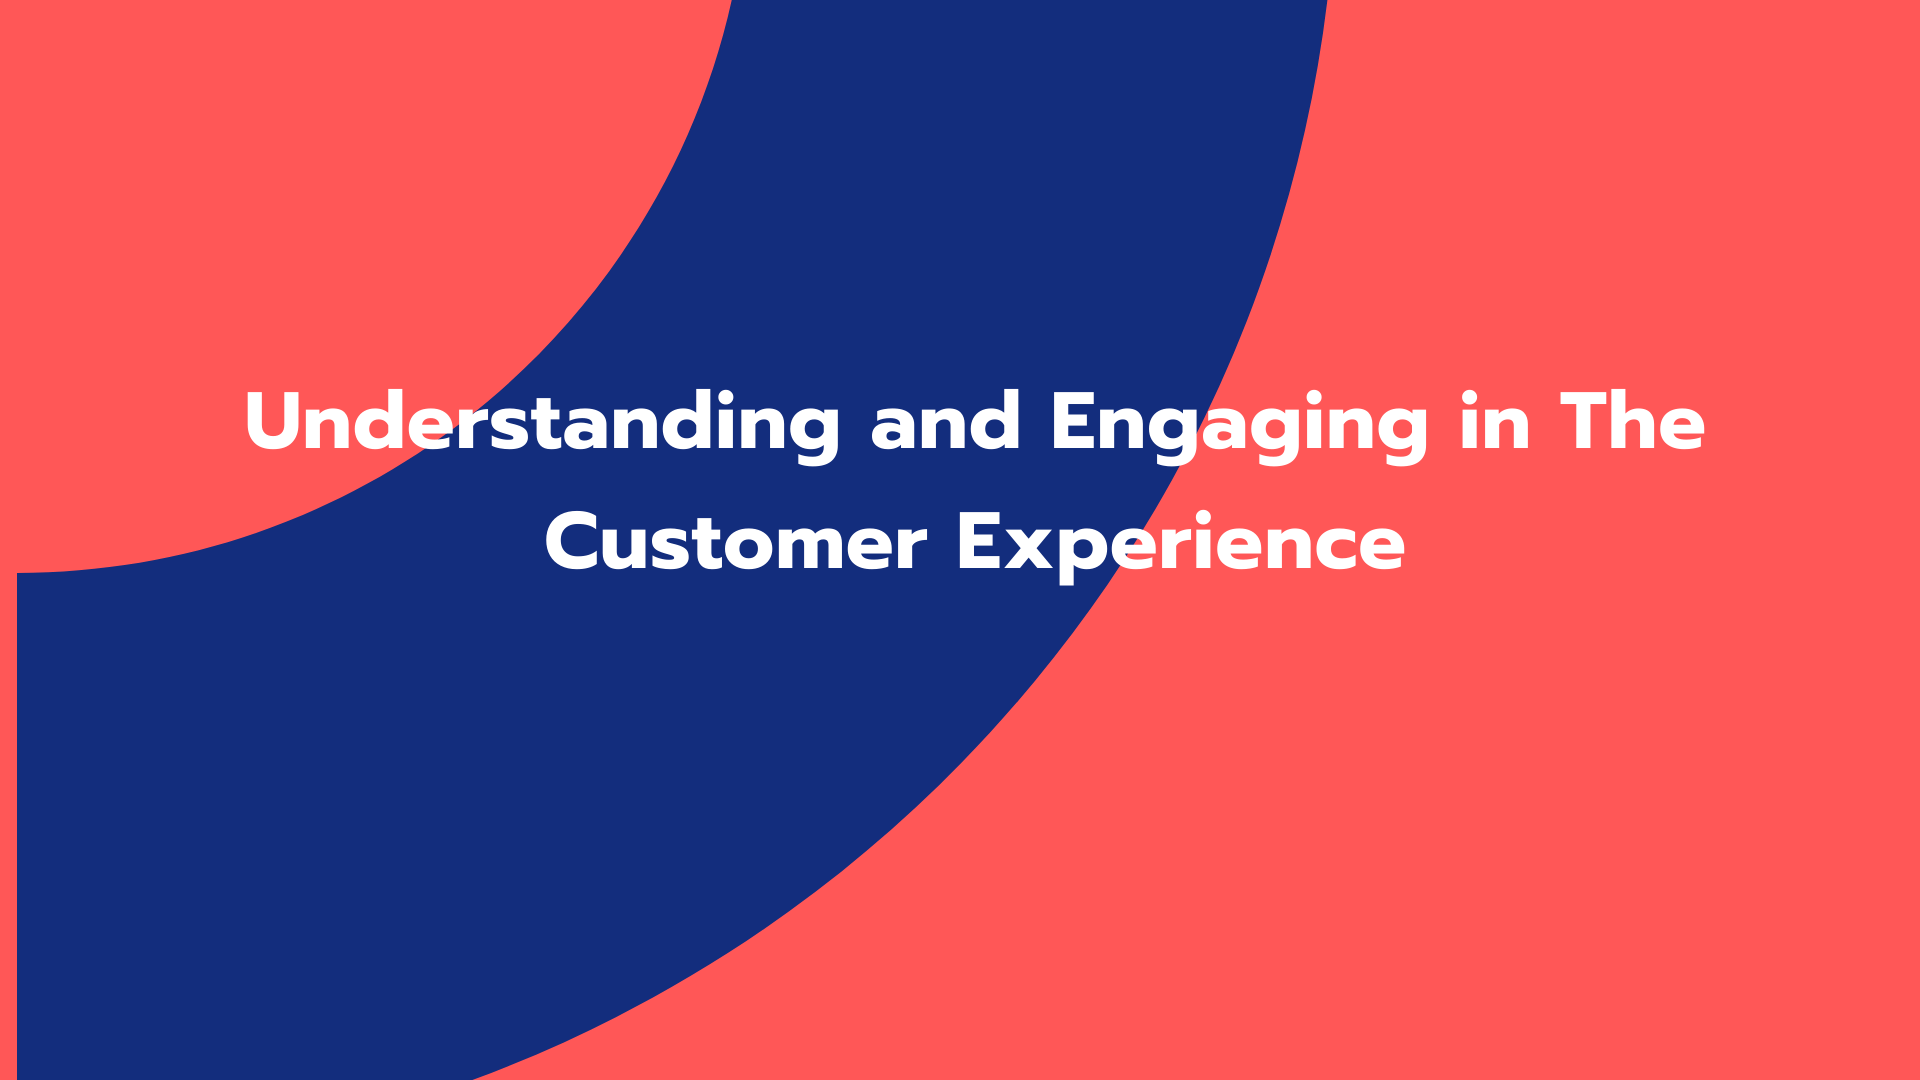 Understanding and Engaging in The Customer Experience with Sainsbury's